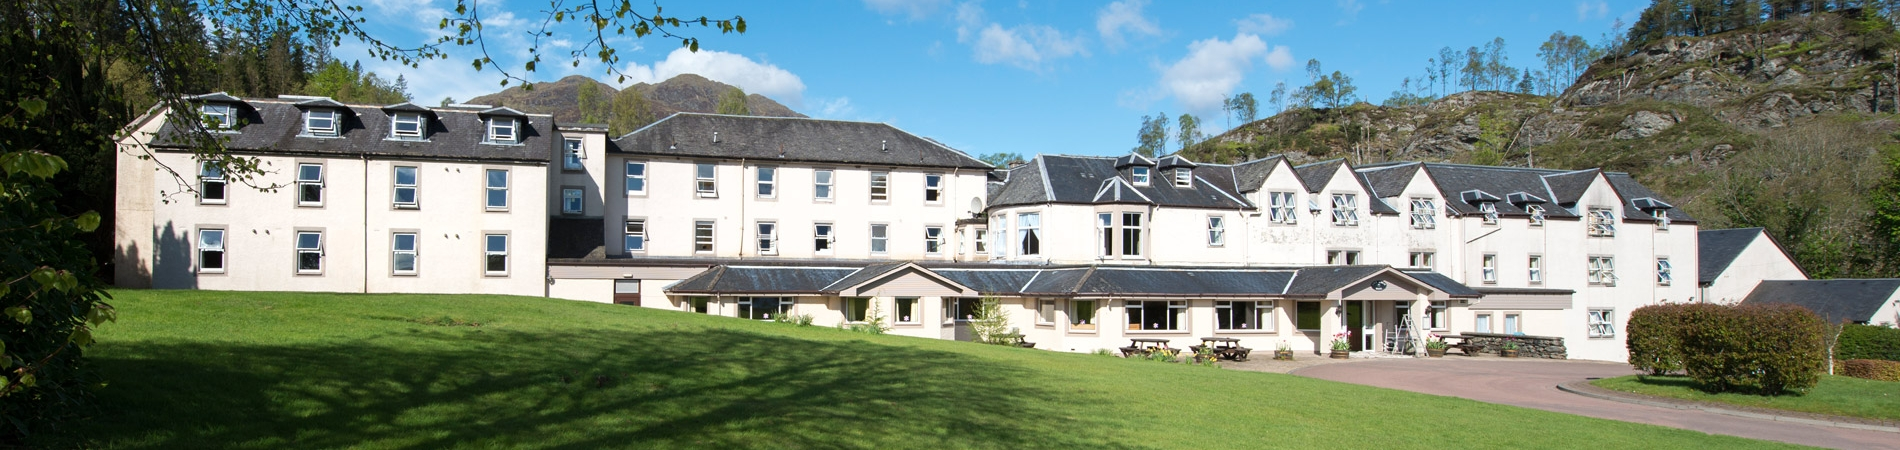 The Loch Achray Hotel is the perfect hub to explore everything Scotland has on offer when on a Scottish Coach Tour.